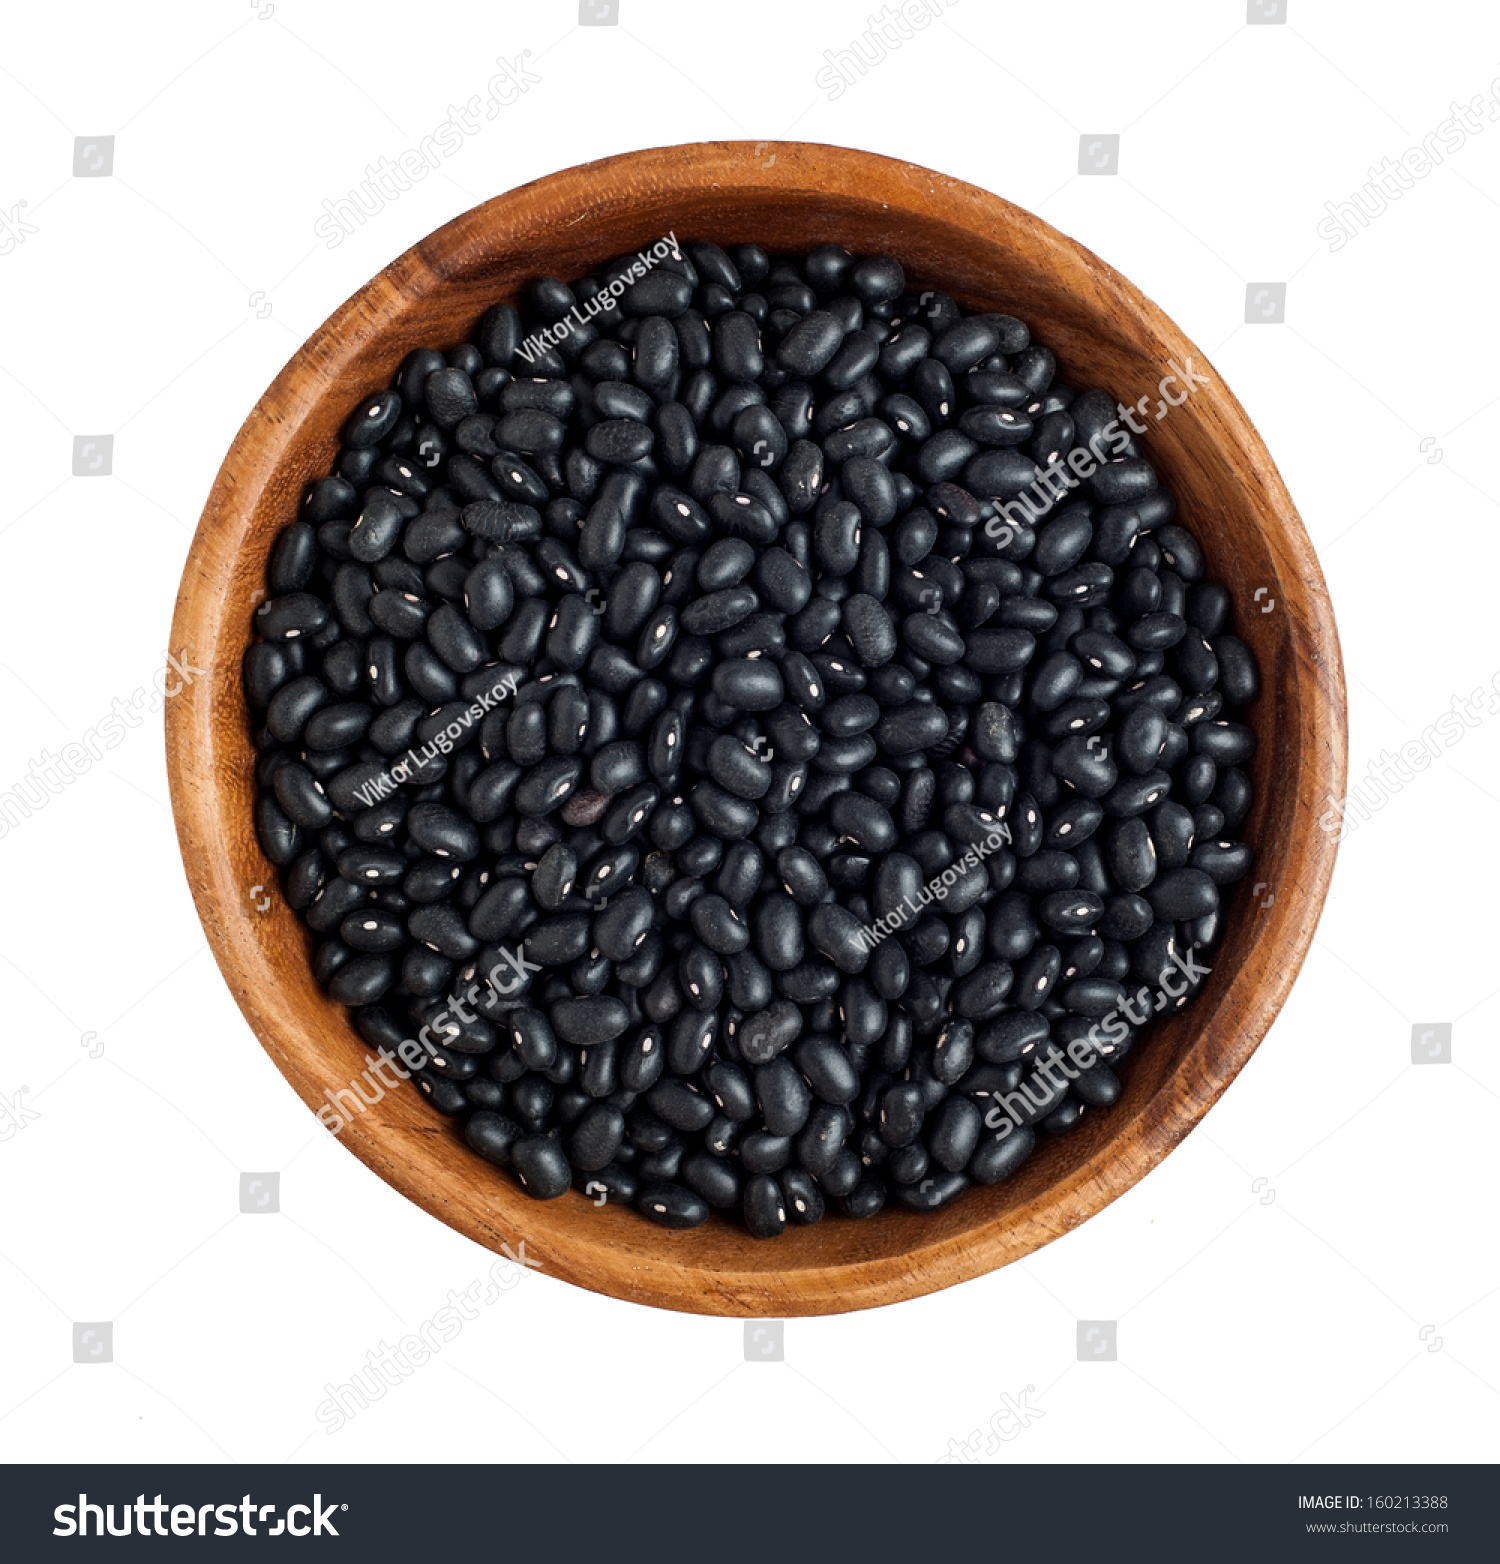 Top View Wooden Bowl Full Black Stock Photo 160213388